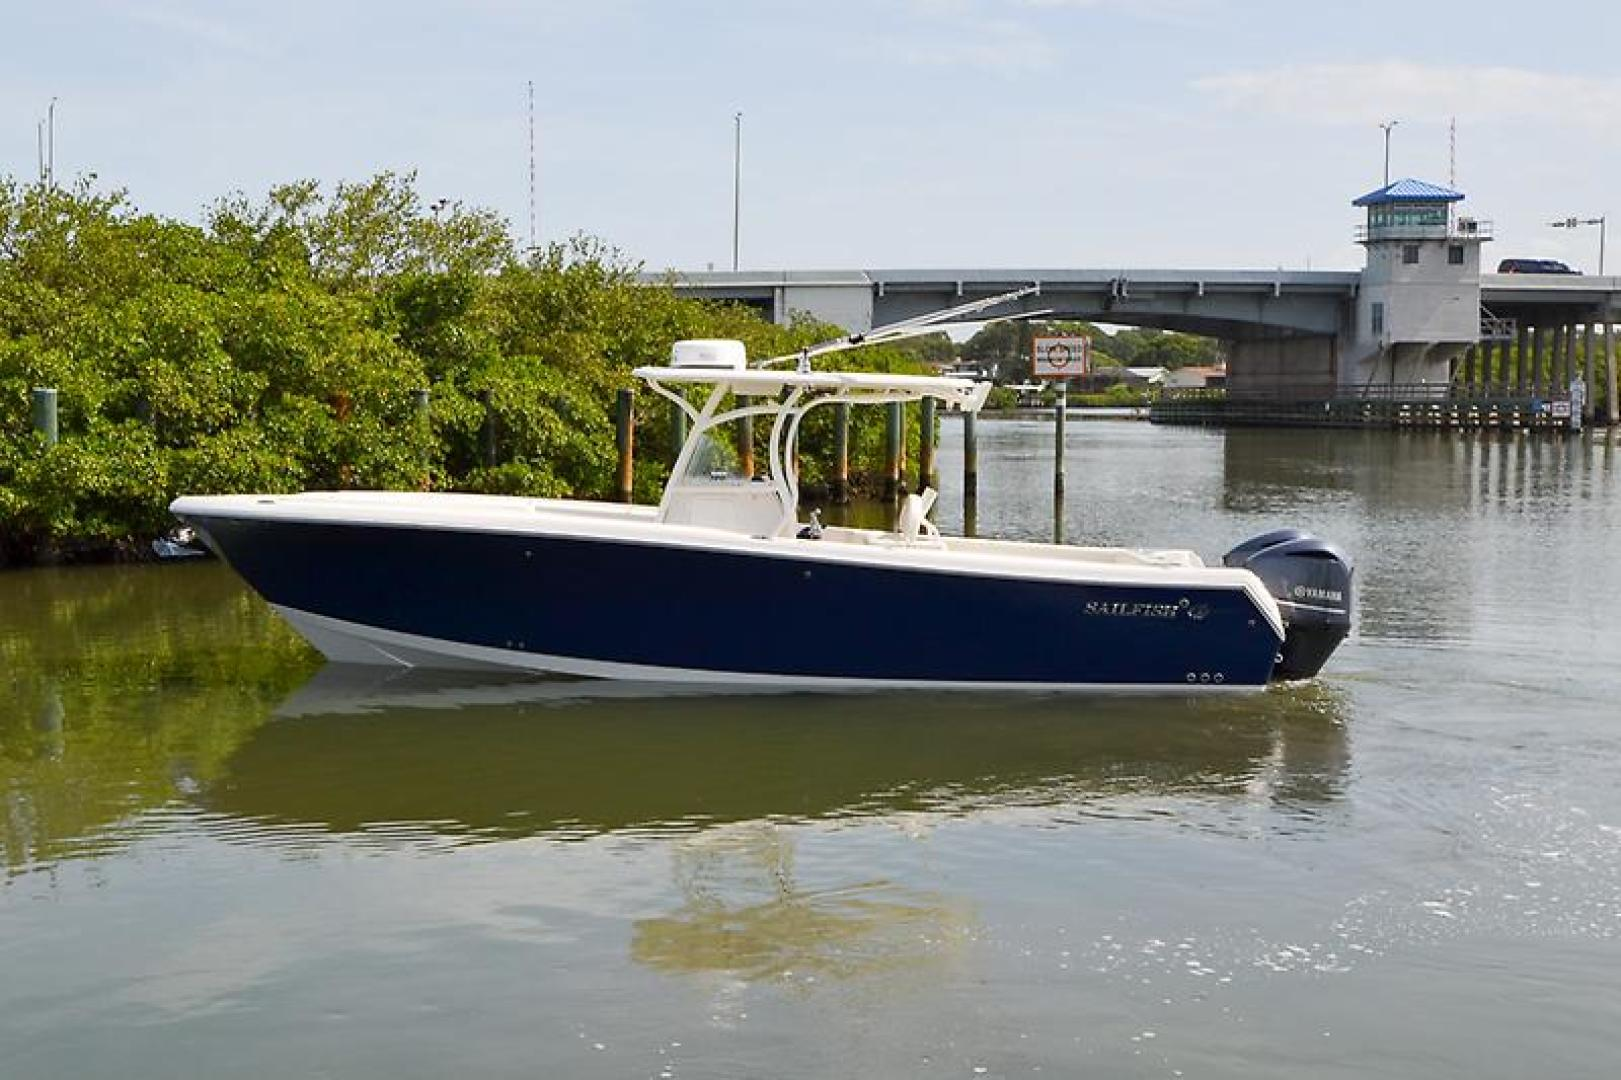 2014 Sailfish 320 cc-22.jpg